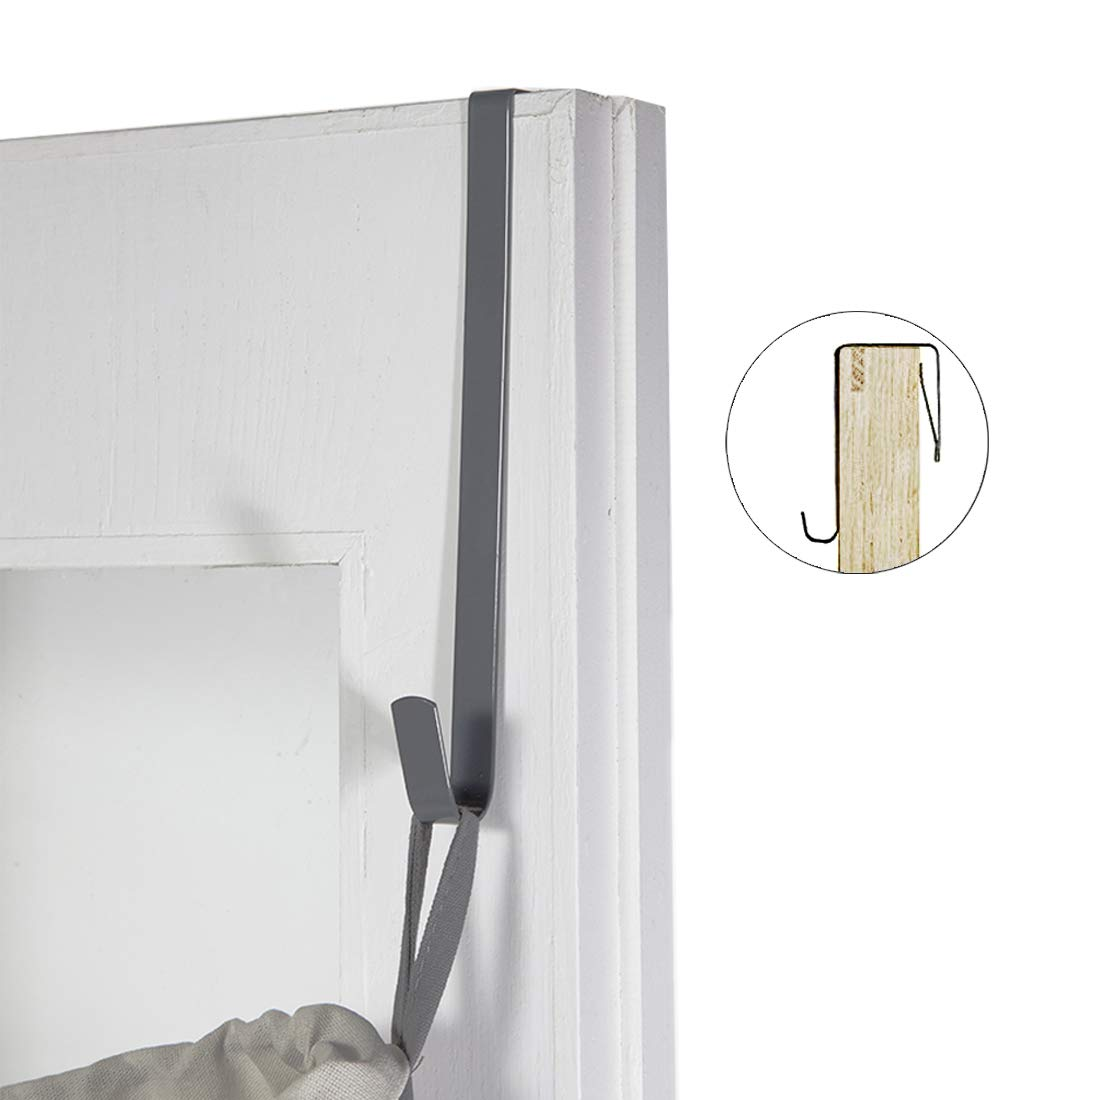 STORAGE MANIAC 2-Pack Durable Hanging Laundry Hamper Bag with Free Door Hooks Gray STM1007000009 Space Saving Thickened Canvas